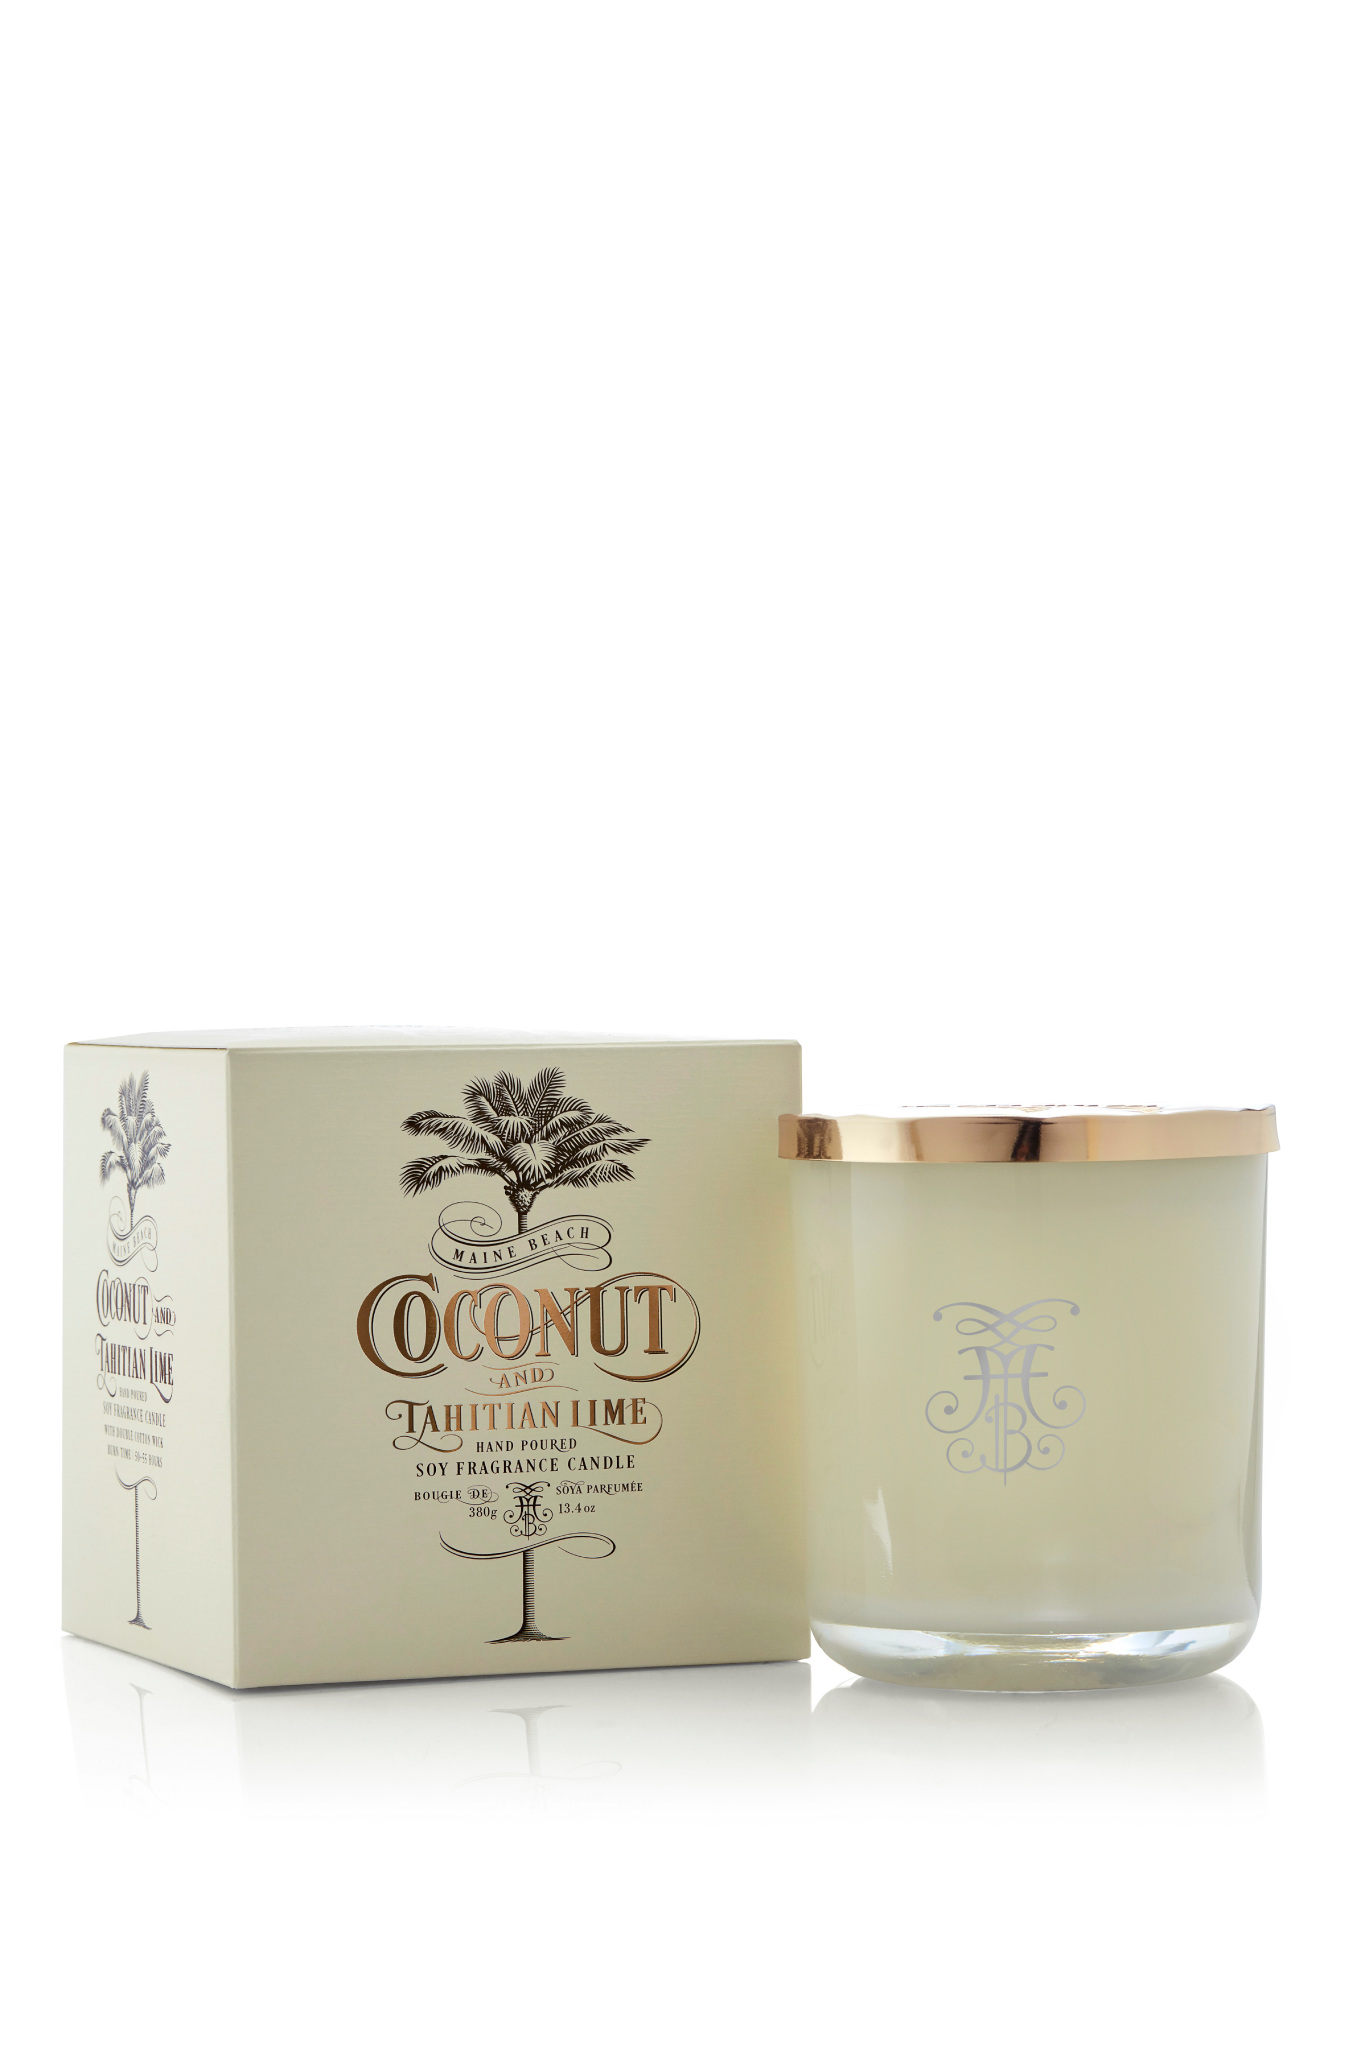 Lord Howe Island Organic Coconut And Tahitian Lime Fragrance Candle